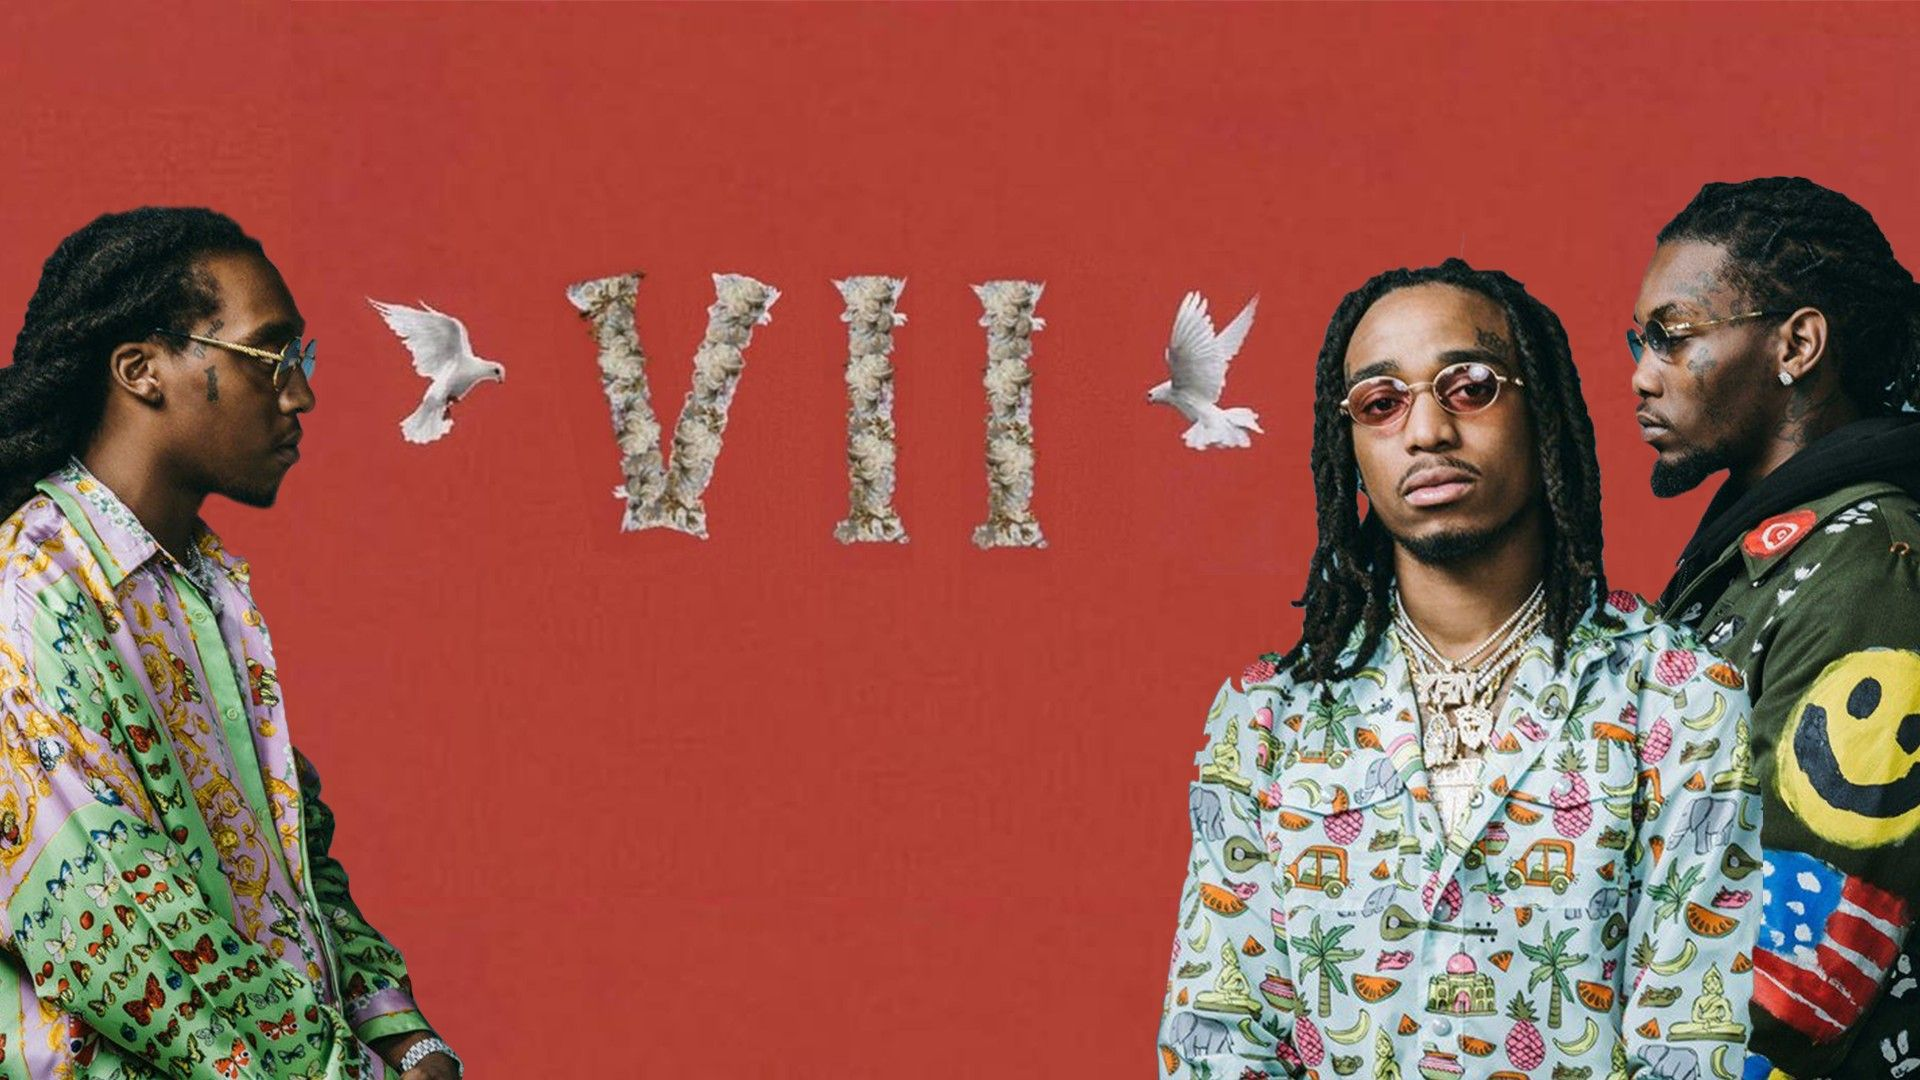 MIgos HD Wallpapers Hip Hop Music Theme Migos Hip hop music 1920x1080